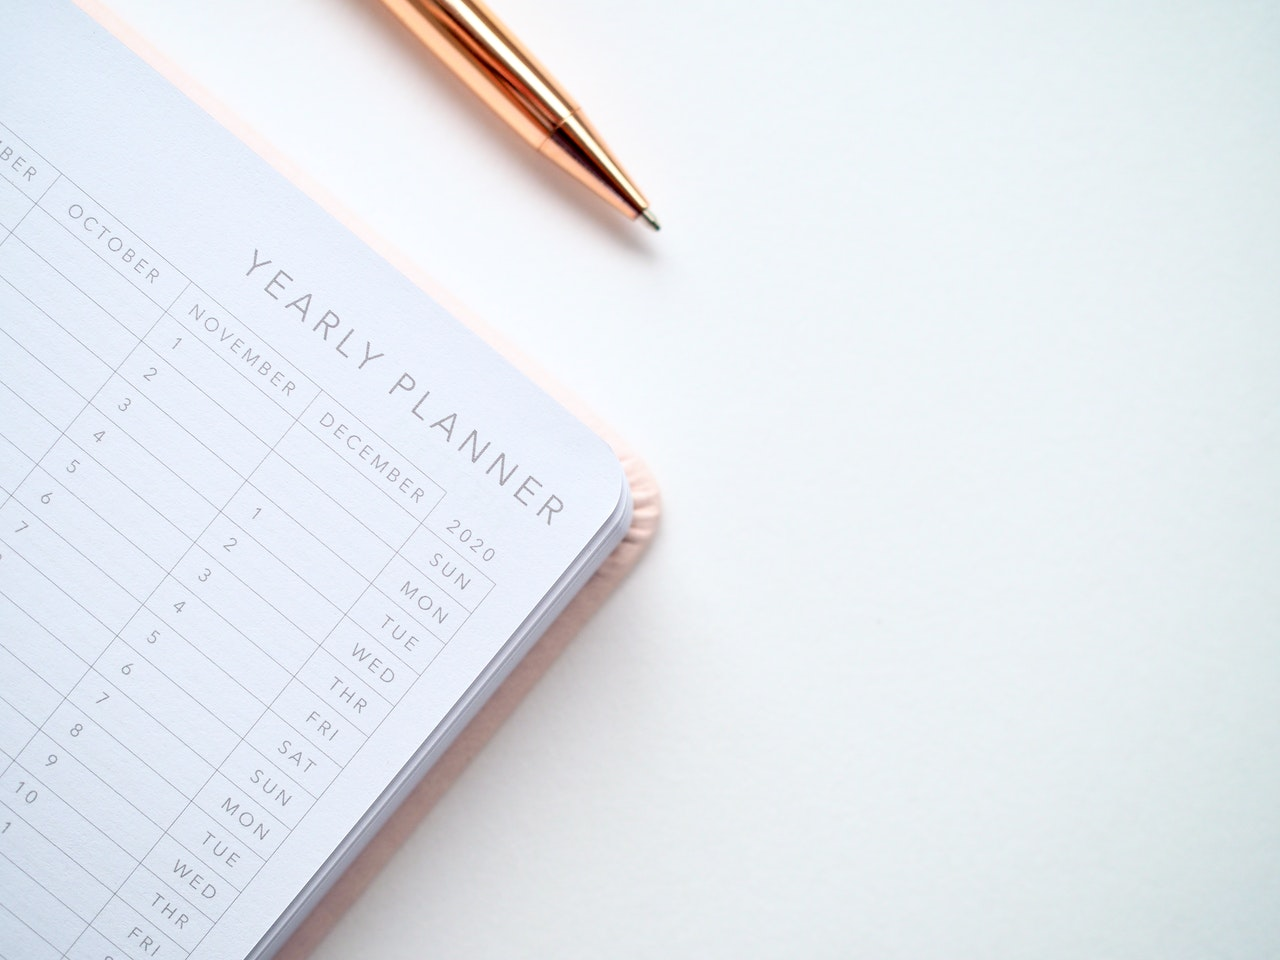 The most successful online students create a schedule and stick to it